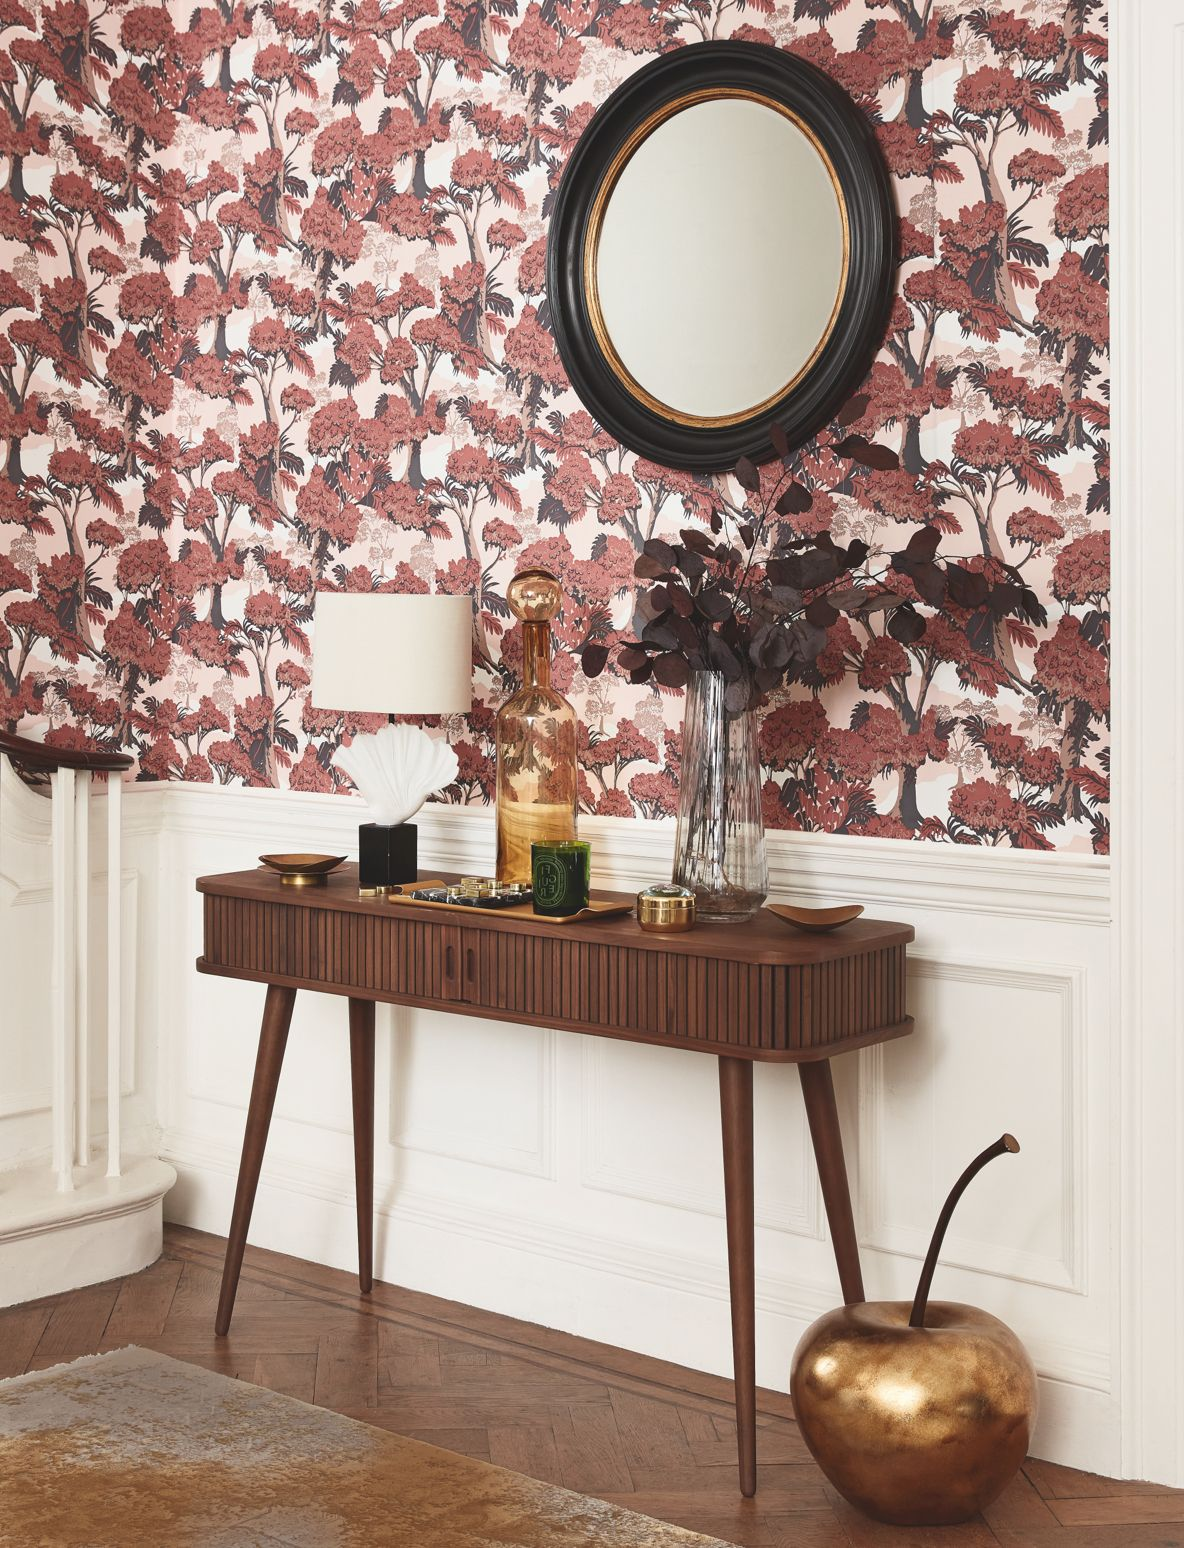 Wall Decor - Mirrors / Wallpaper